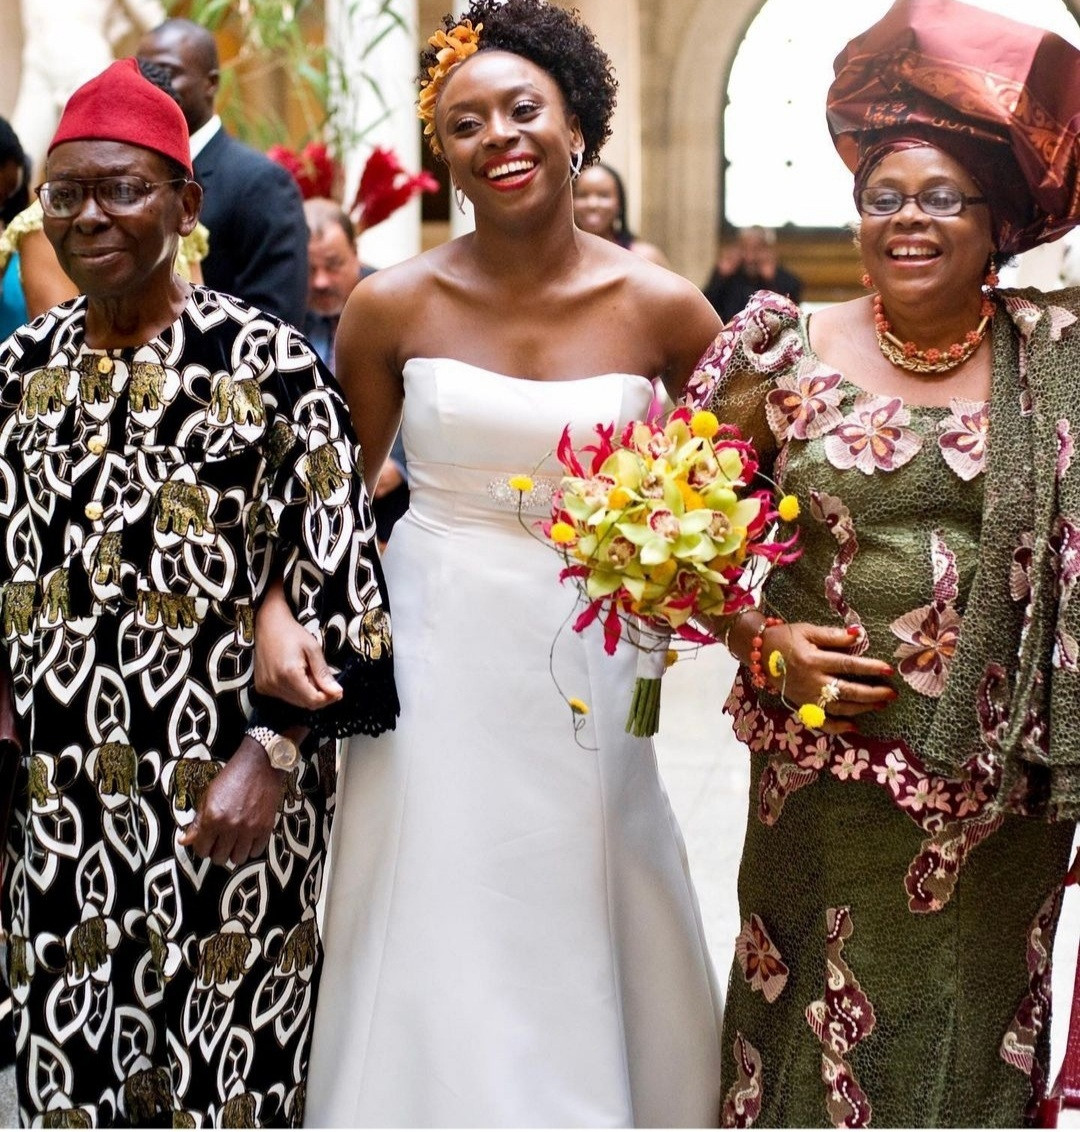 CHIMAMANDA ADICHIE SHARES PHOTOS FROM HER WEDDING AS SHE REVEALS HOW SHE BROKE WITH CONVENTION TO INSPIRE YOUNG WOMEN/MEN.PHOTOS